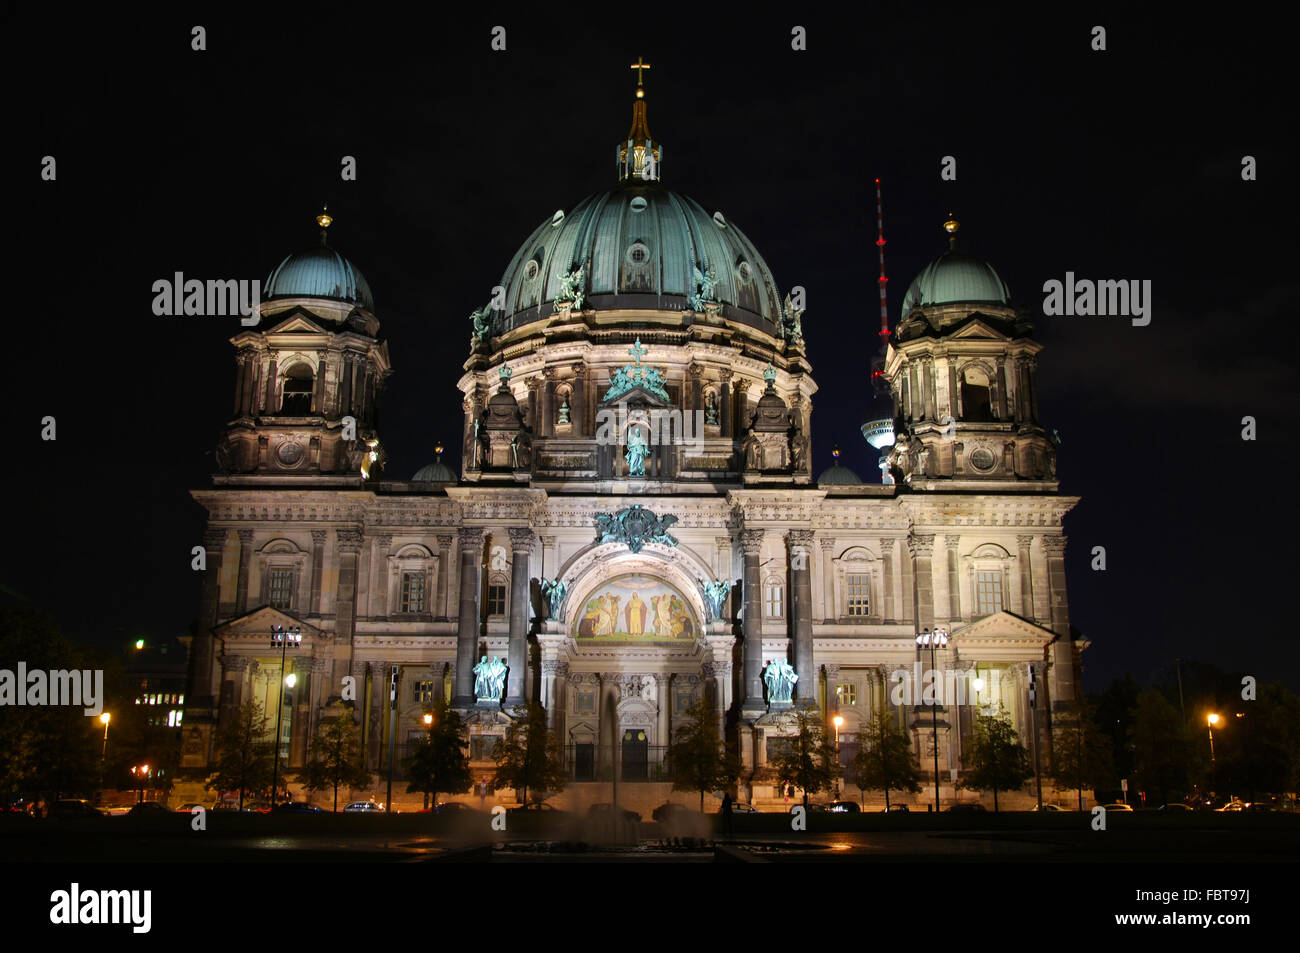 frontal view of berlin dome by night - Stock Image